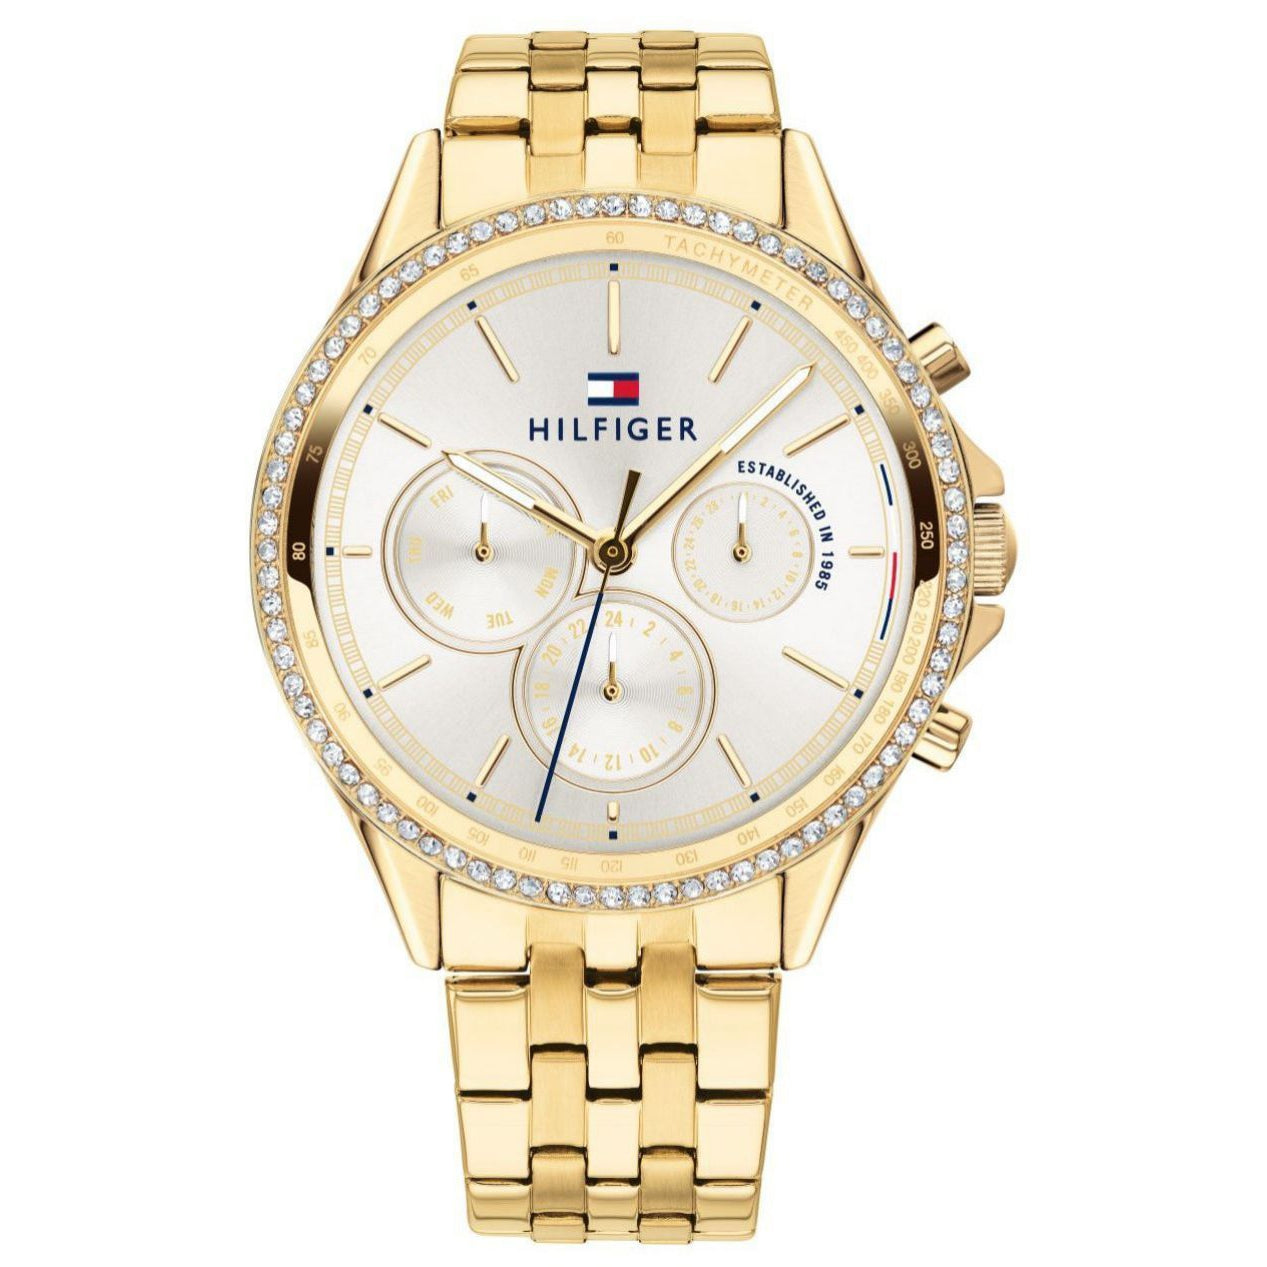 3c2f46cf8 Tommy Hilfiger Dual Tone Steel Women's Watch - 1781977 | Buy Women's ...